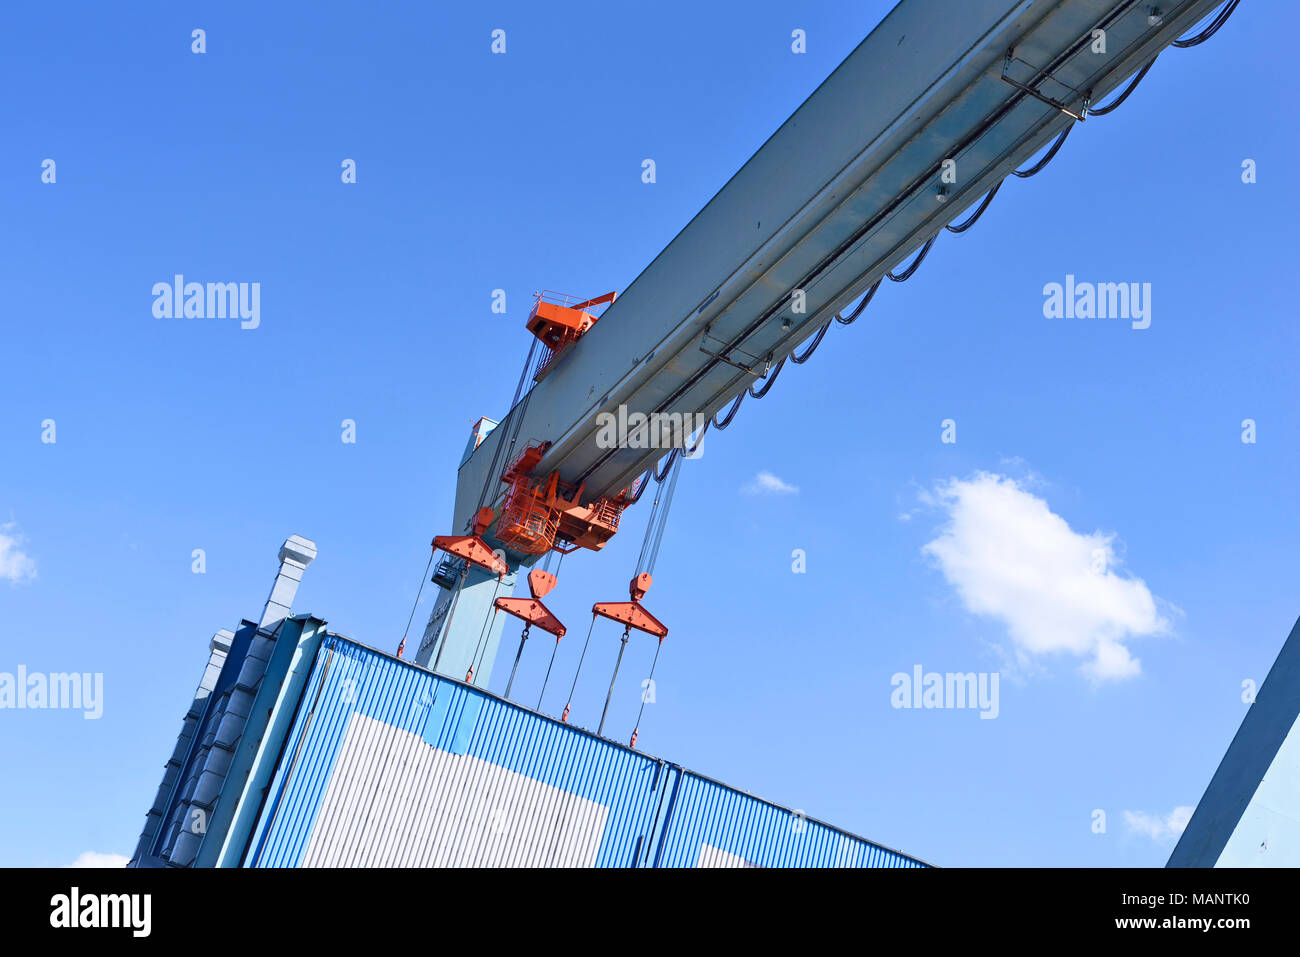 Container harbor with harbor cranes or freight cranes. Warf or cargo shipping scene, industrial transportation or shipping scene. Hamburg harbor. - Stock Image